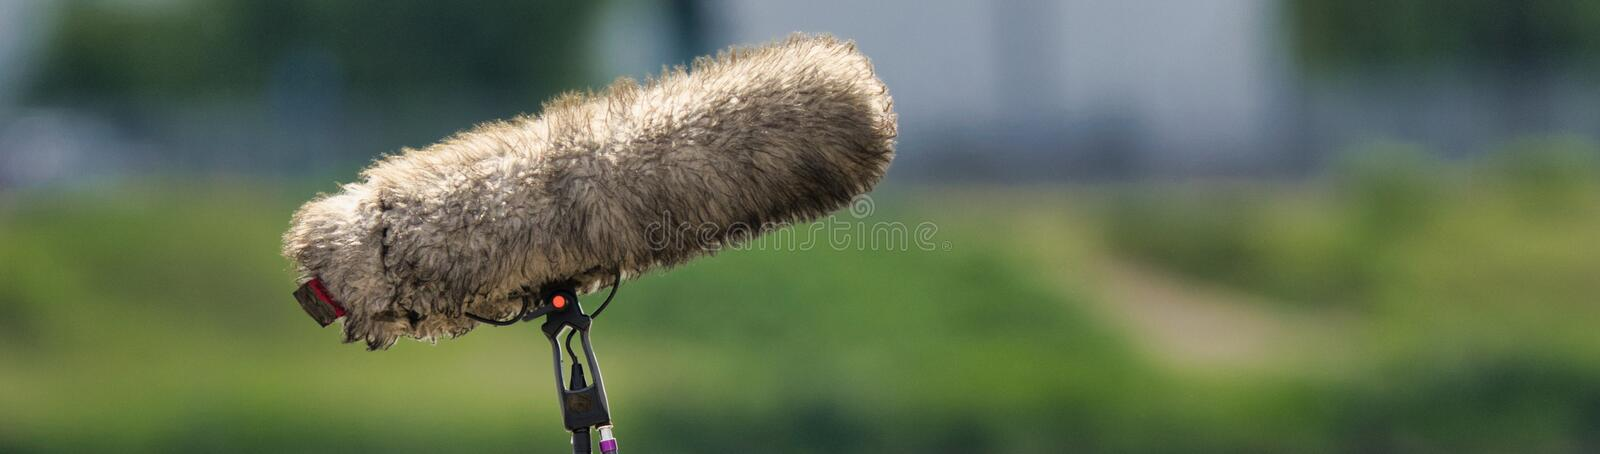 Close-up of a professional microphone for audio recording with a cover to reduce wind noise, intentionally blurred background, stock image